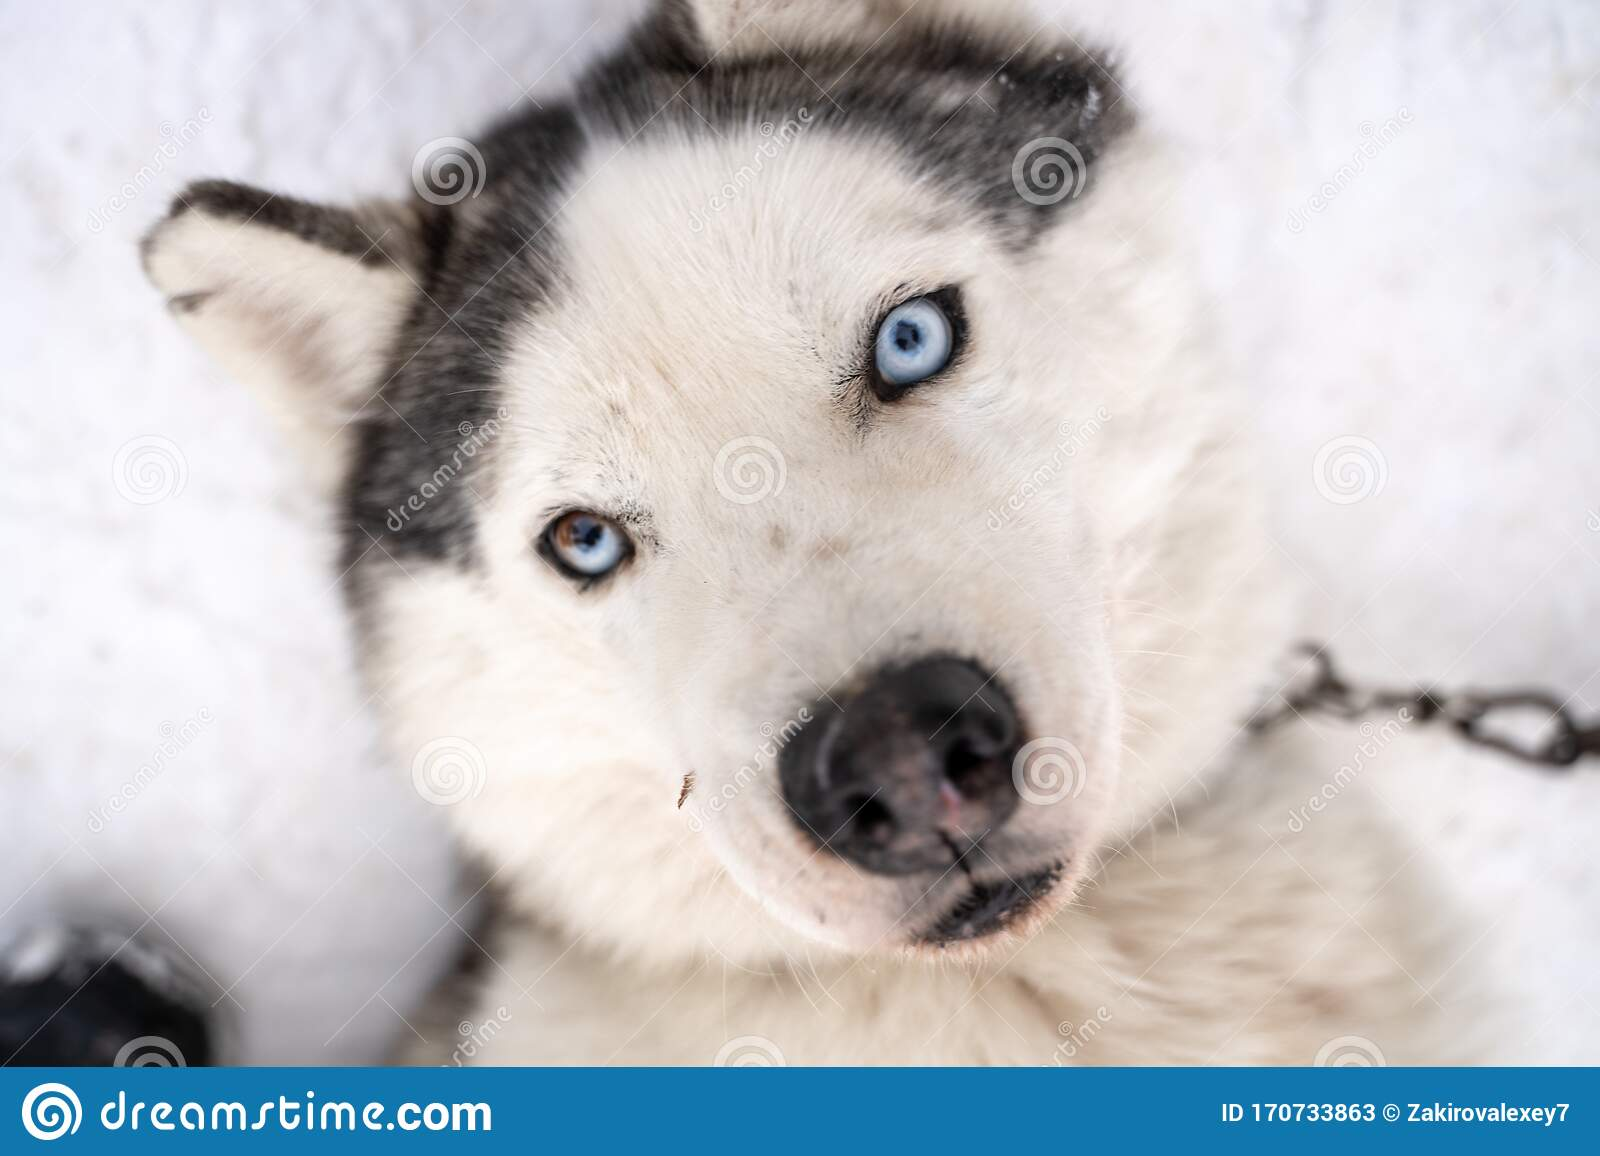 Husky Puppy Cute Adorable Baby Dog Face Waiting In The Dog House With Grass For Playing And Eating In The Animal Pet Stock Image Image Of Face Park 170733863